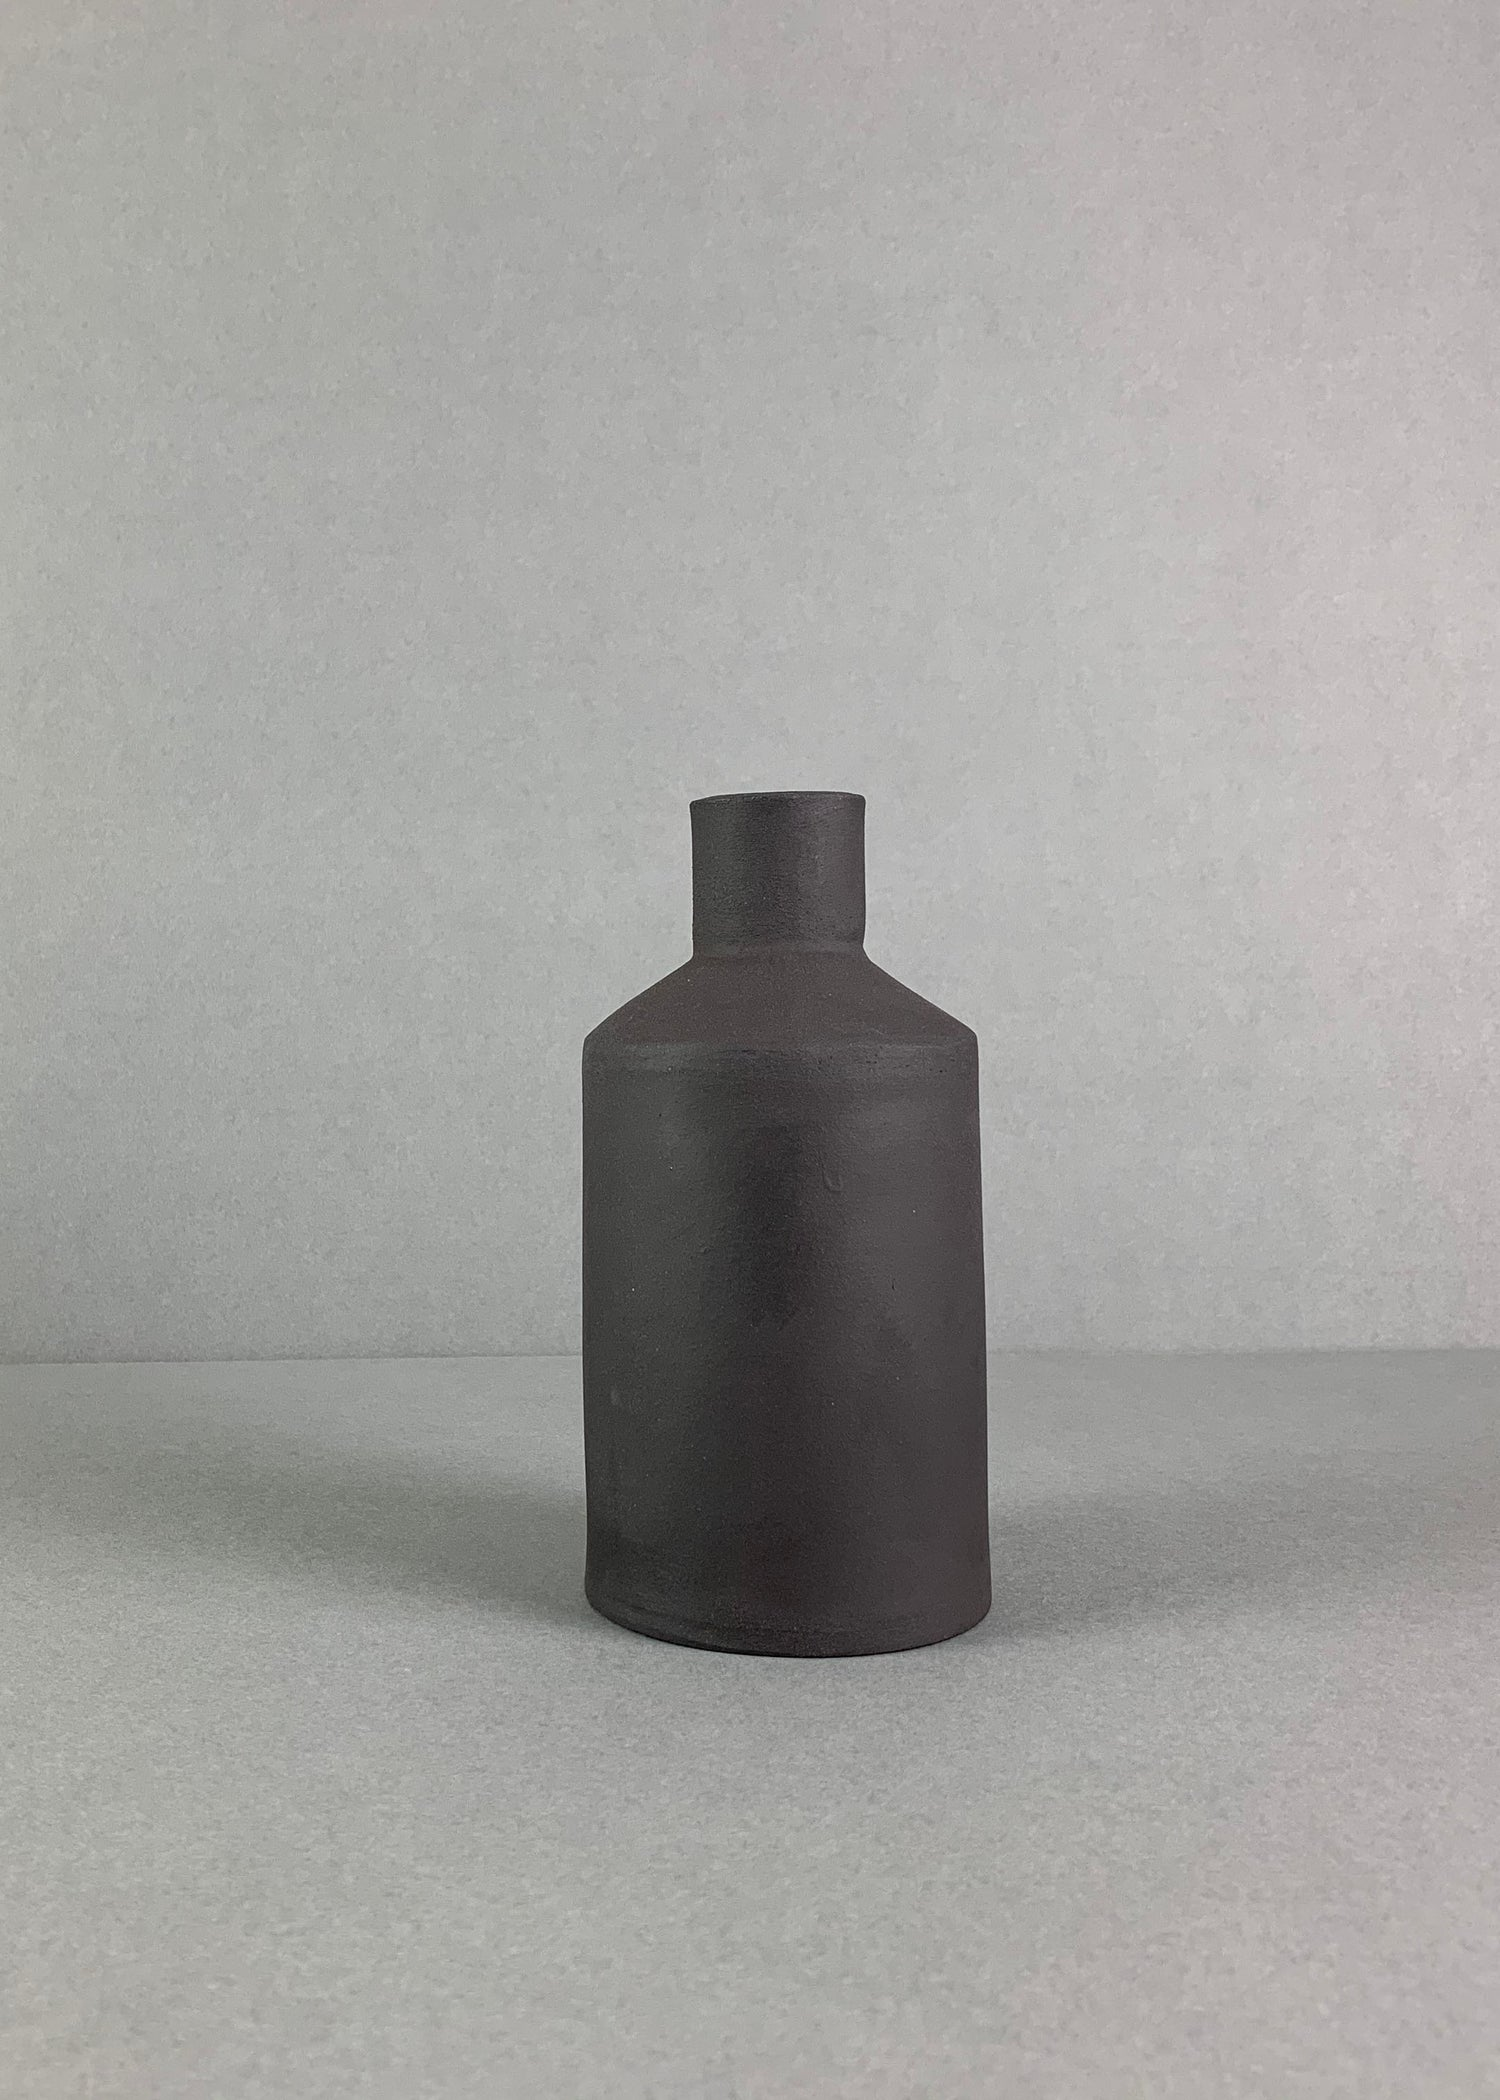 Image of Small Black Bottle Vase